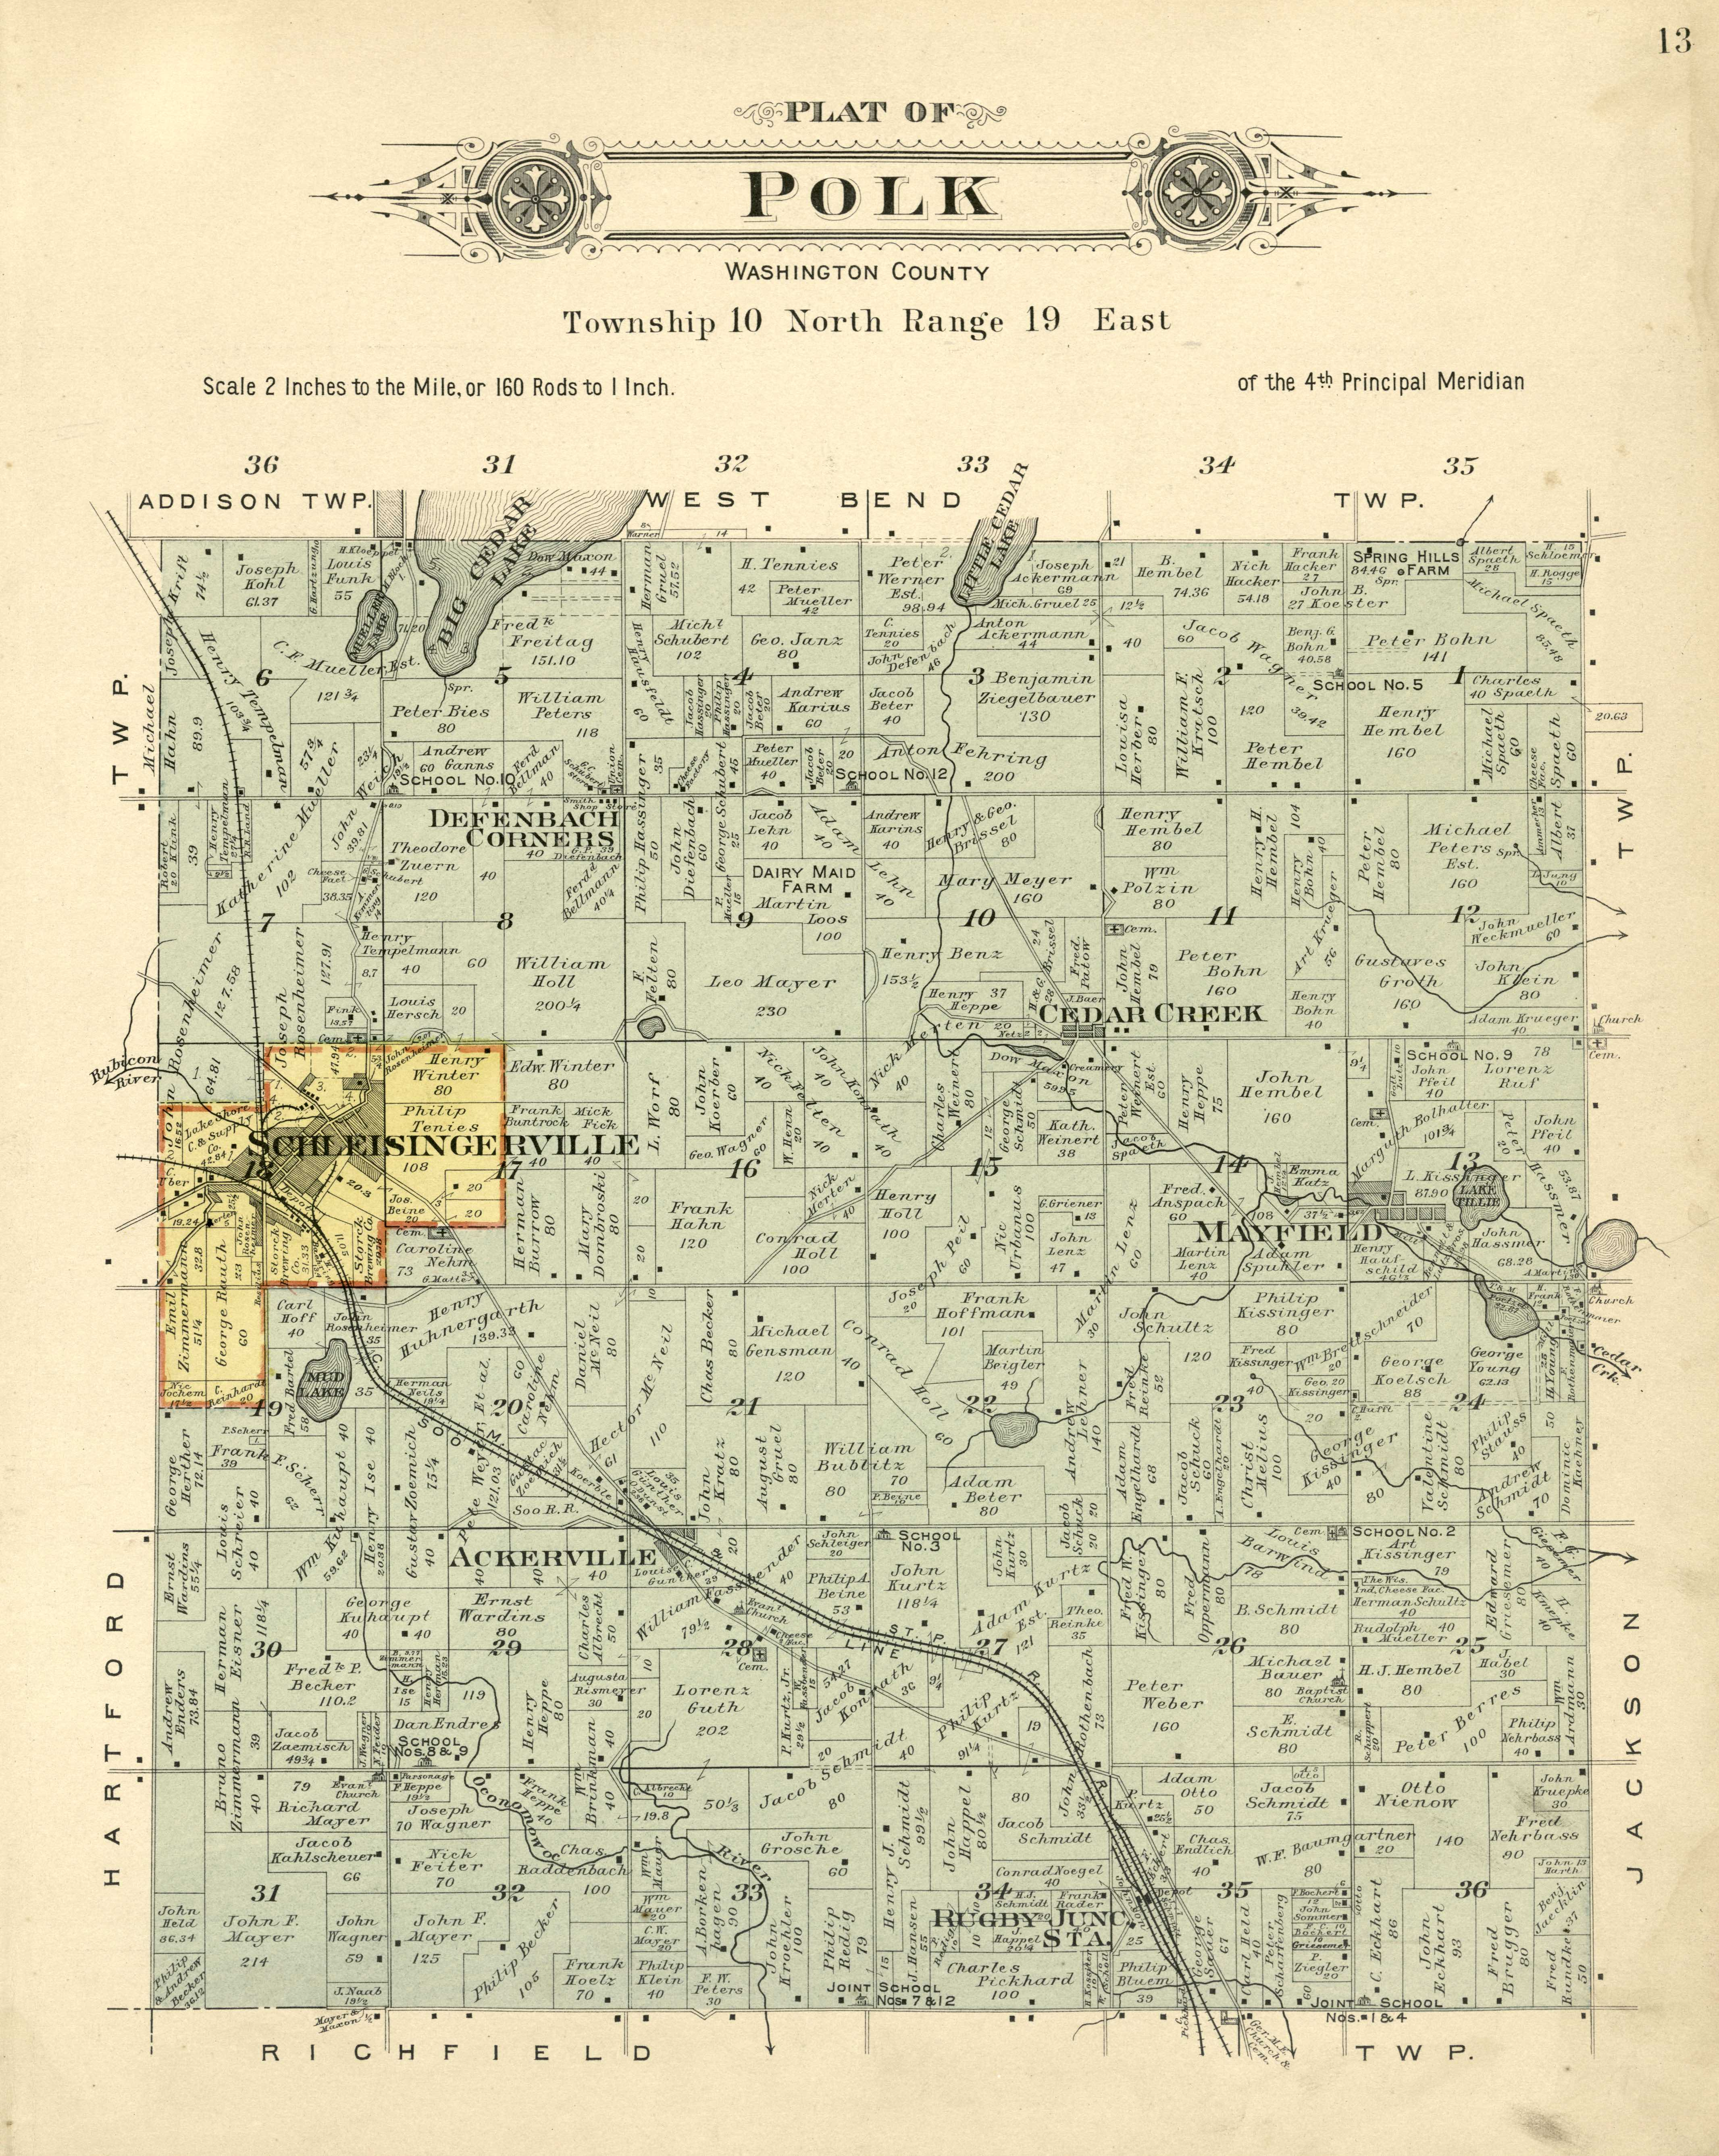 <table class=&quot;lightbox&quot;><tr><td colspan=2 class=&quot;lightbox-title&quot;>Town of Polk Plat Map</td></tr><tr><td colspan=2 class=&quot;lightbox-caption&quot;>This 1915 plat map of the Town of Polk highlights how waterways and railroads shaped its settlement and development.</td></tr><tr><td colspan=2 class=&quot;lightbox-spacer&quot;></td></tr><tr class=&quot;lightbox-detail&quot;><td class=&quot;cell-title&quot;>Source: </td><td class=&quot;cell-value&quot;>From the Library of Congress Geography and Map Division. <br /><a href=&quot;https://www.loc.gov/resource/g4123wm.gla00199/?sp=12&r=-0.867,0.013,2.734,1.161,0&quot; target=&quot;_blank&quot;>Library of Congress</a></td></tr><tr class=&quot;filler-row&quot;><td colspan=2>&nbsp;</td></tr></table>